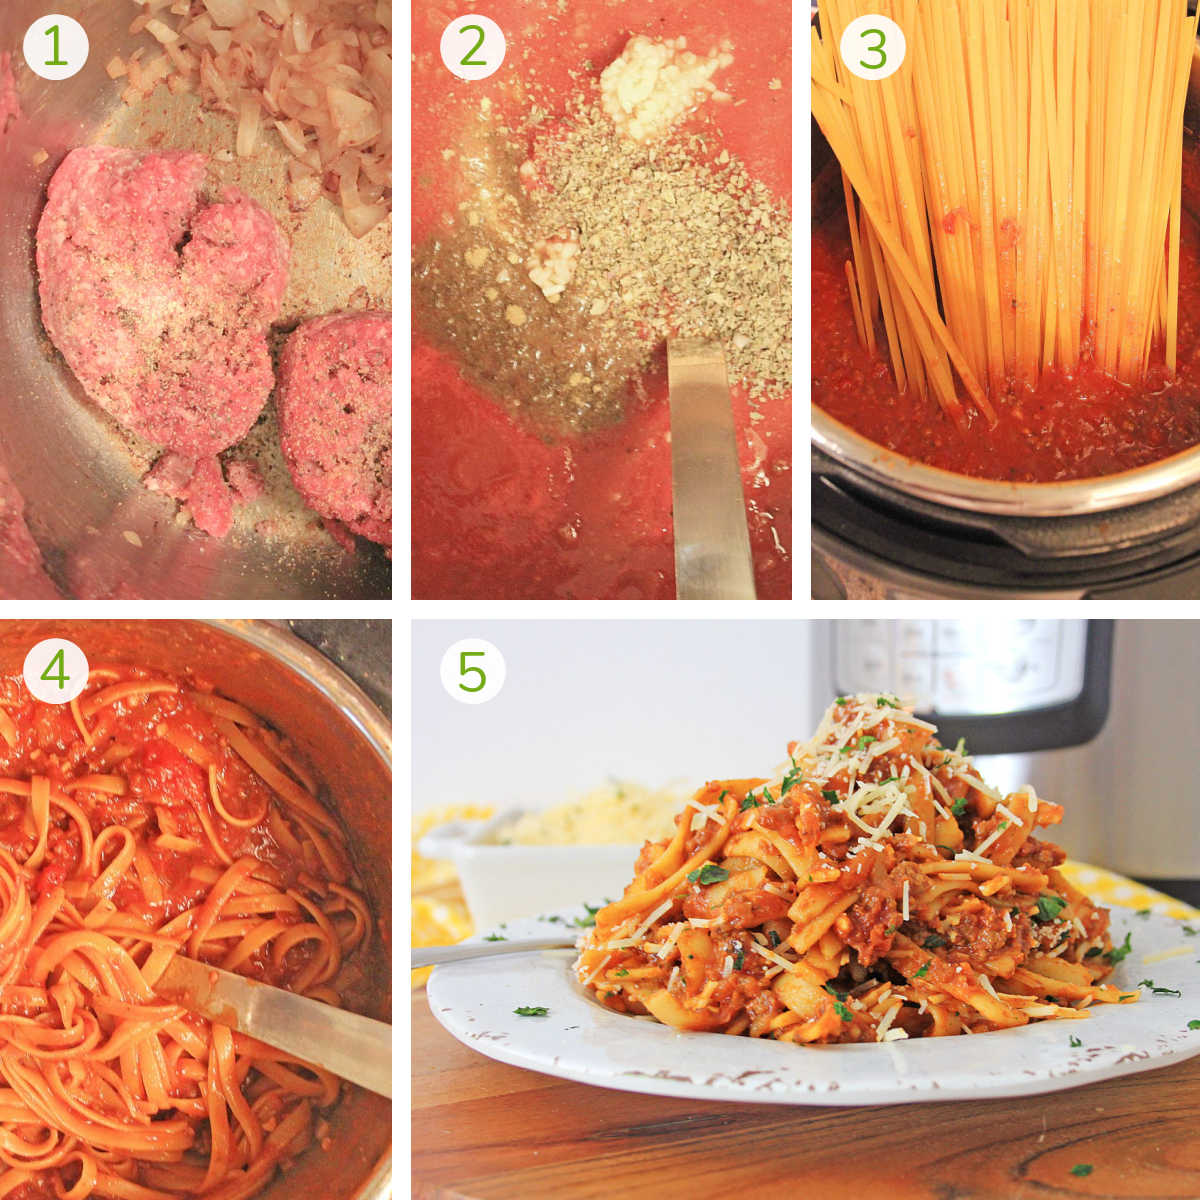 several process photos showing how to brown the sirloin, make the tomato sauce, cook the noodles and serve.